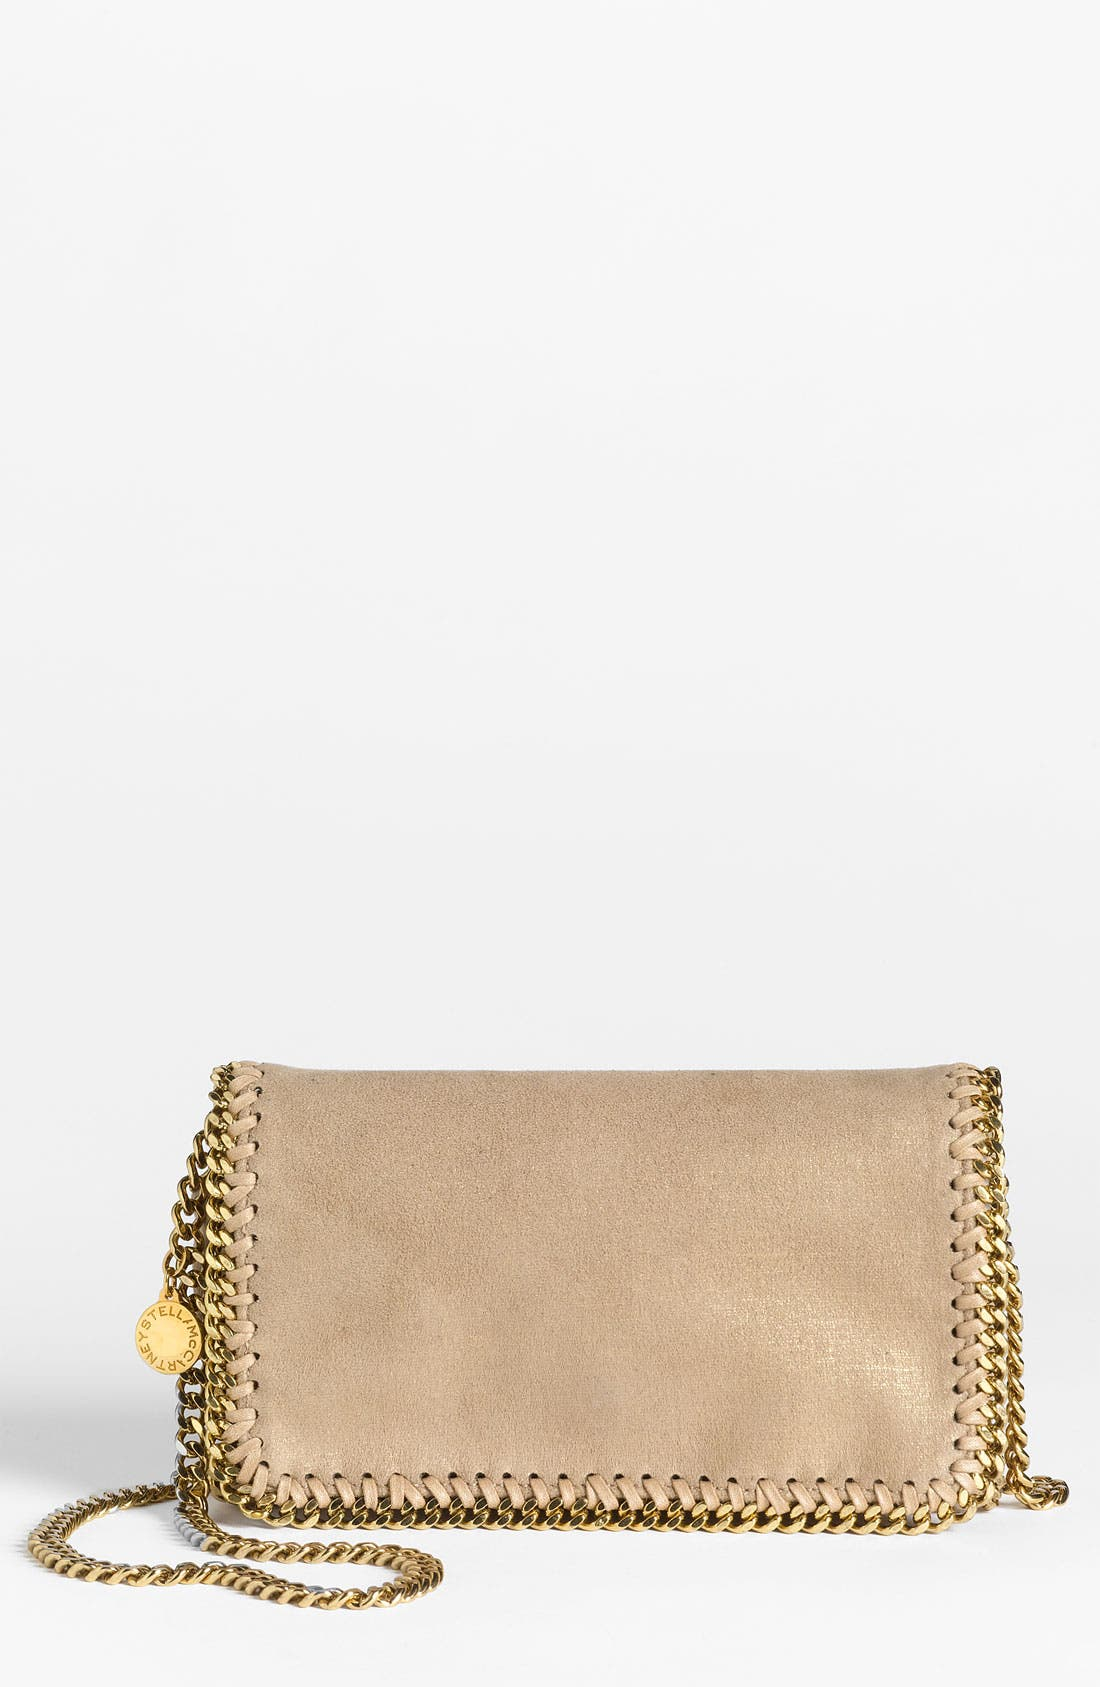 Alternate Image 1 Selected - Stella McCartney 'Falabella' Faux Suede Crossbody Bag